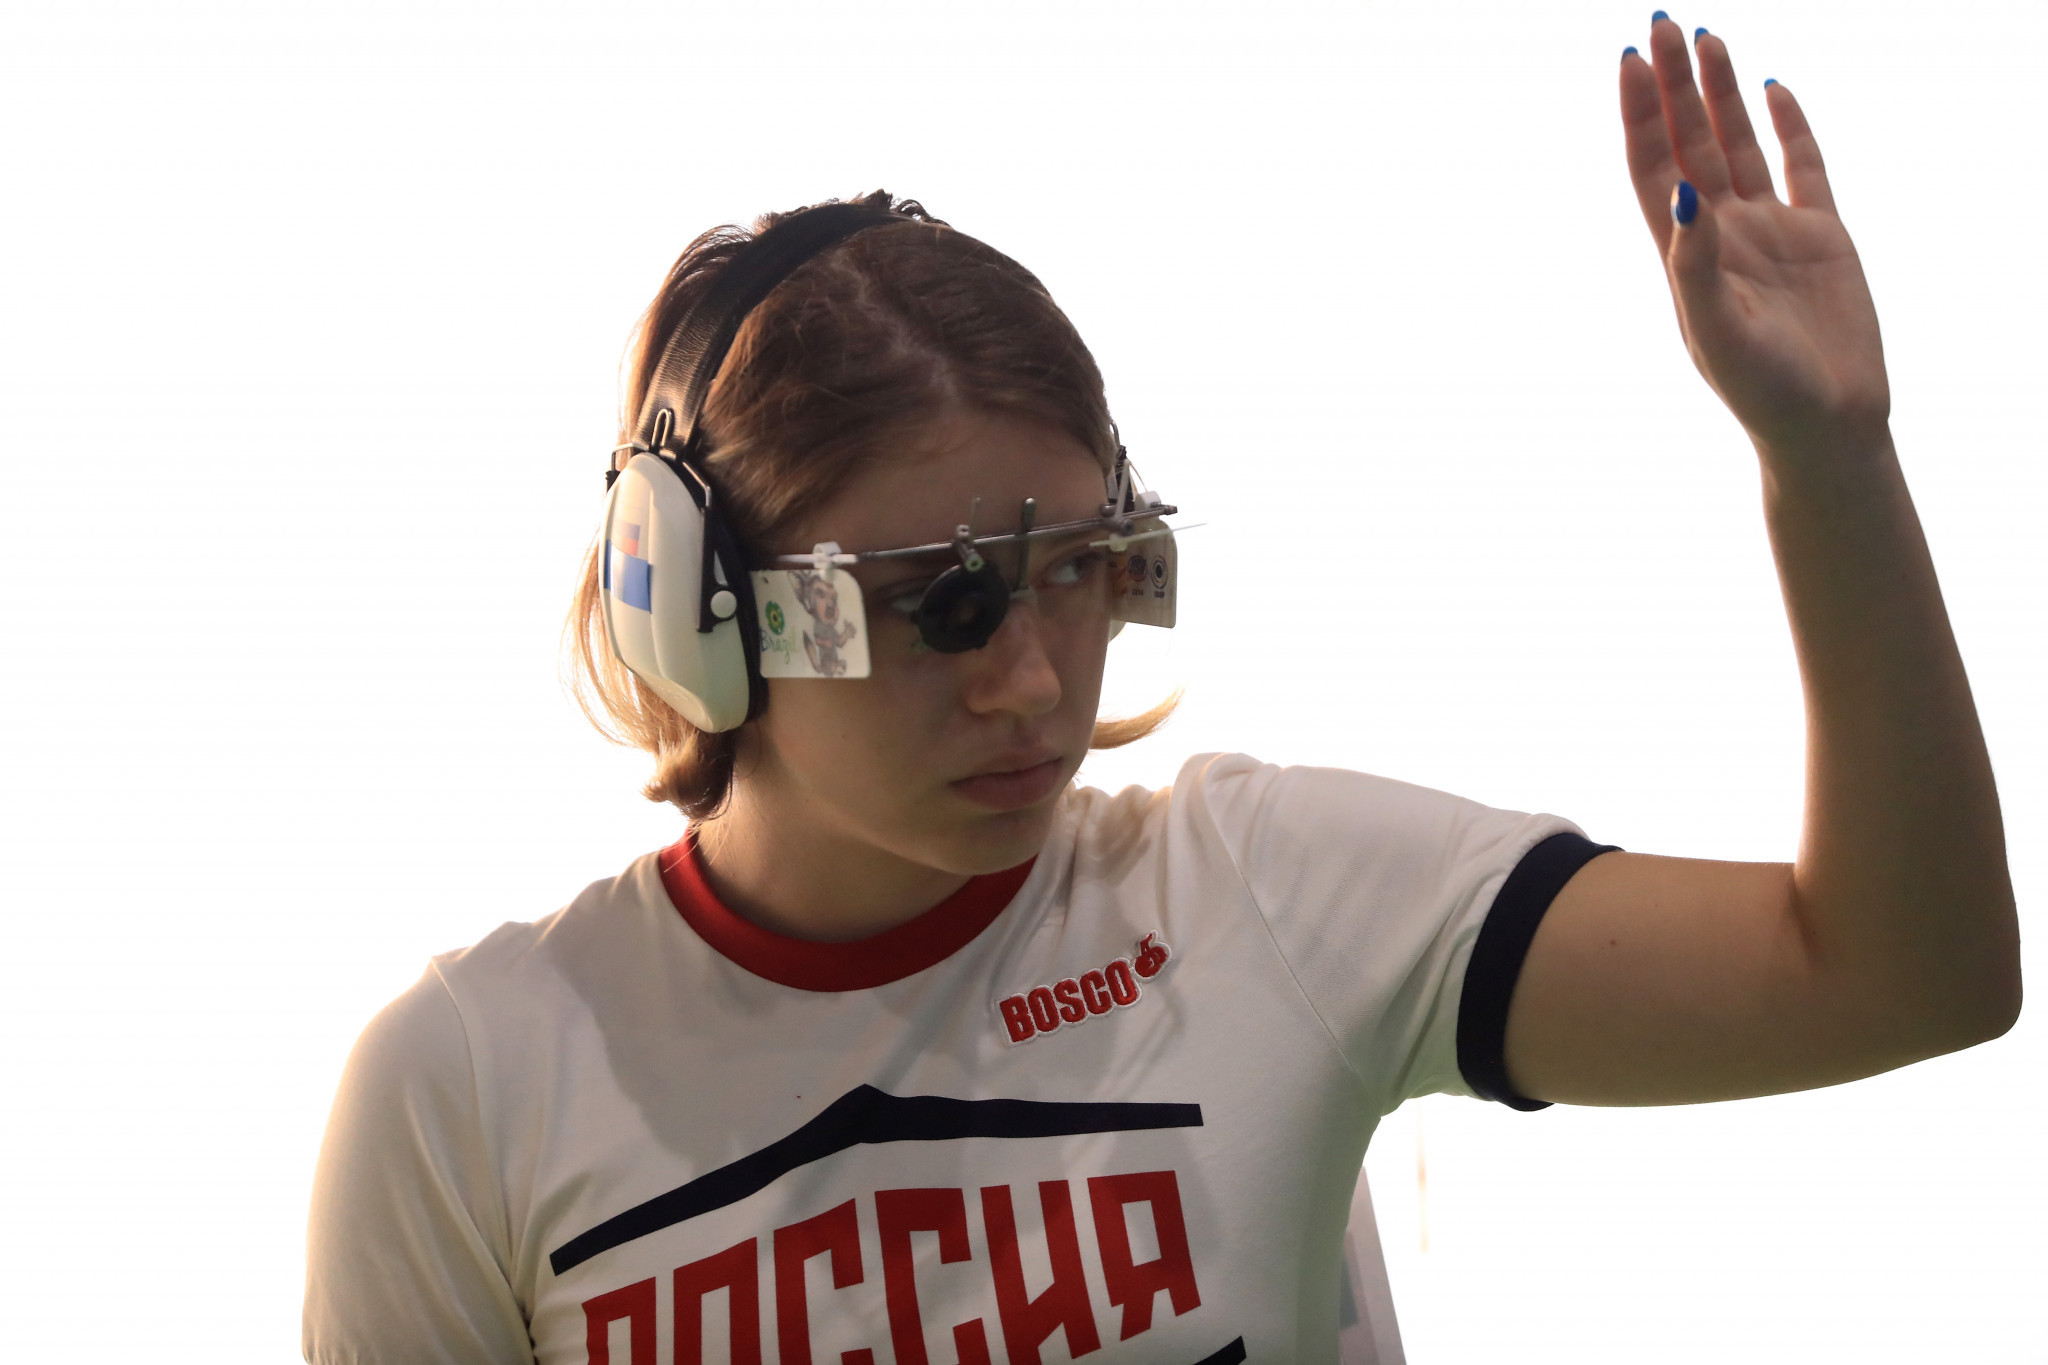 Vitalina Batsarashkina helped Russia qualify in first place for the final of the mixed team 10m air pistol event ©Getty Images